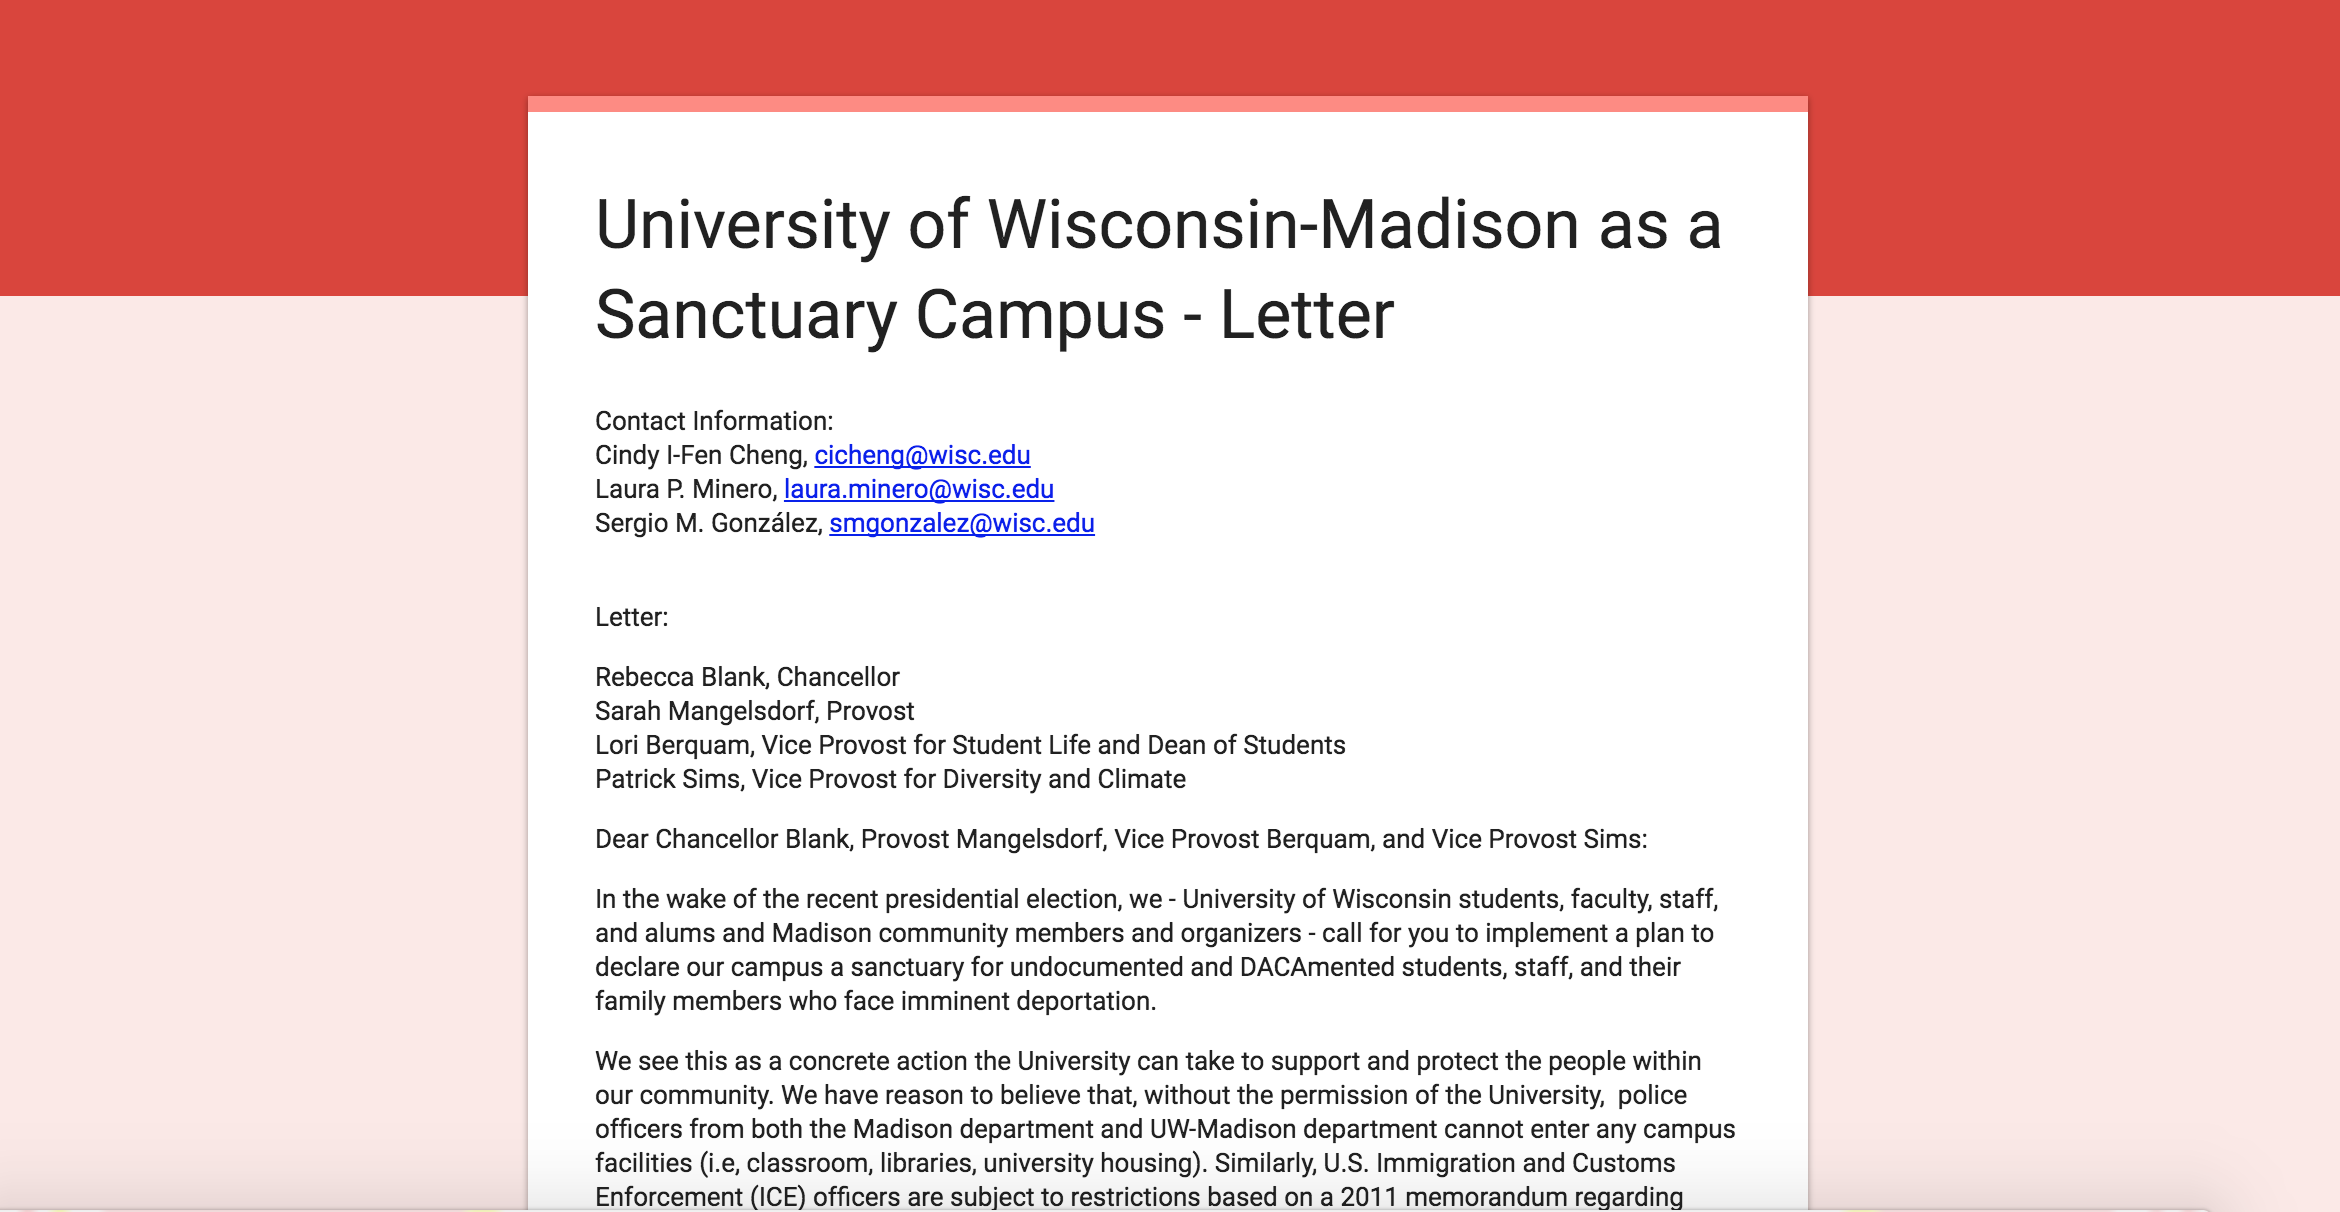 Uw madison application essay Research paper Help on ra application essay, stanford application essay, osu application essay, ut application essay, uc application essay, iu application essay, uf application essay,